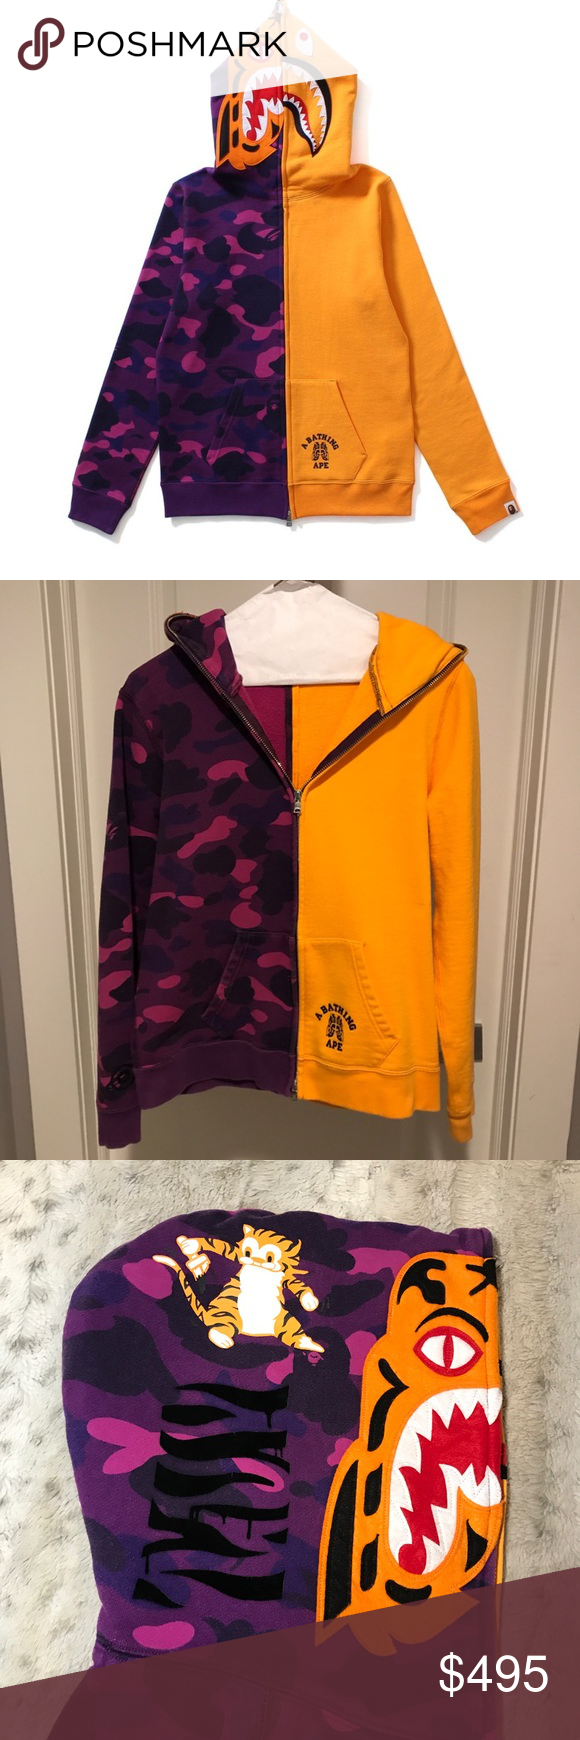 8b0cec0e 🔥BAPE Color Camo Tiger Shark Half Full Zip Hoodie 🔥BAPE Color Camo Tiger  Shark Half Full Zip Hoodie (Ladies) Purple/ Orange. Ladies size small  (Japanese ...